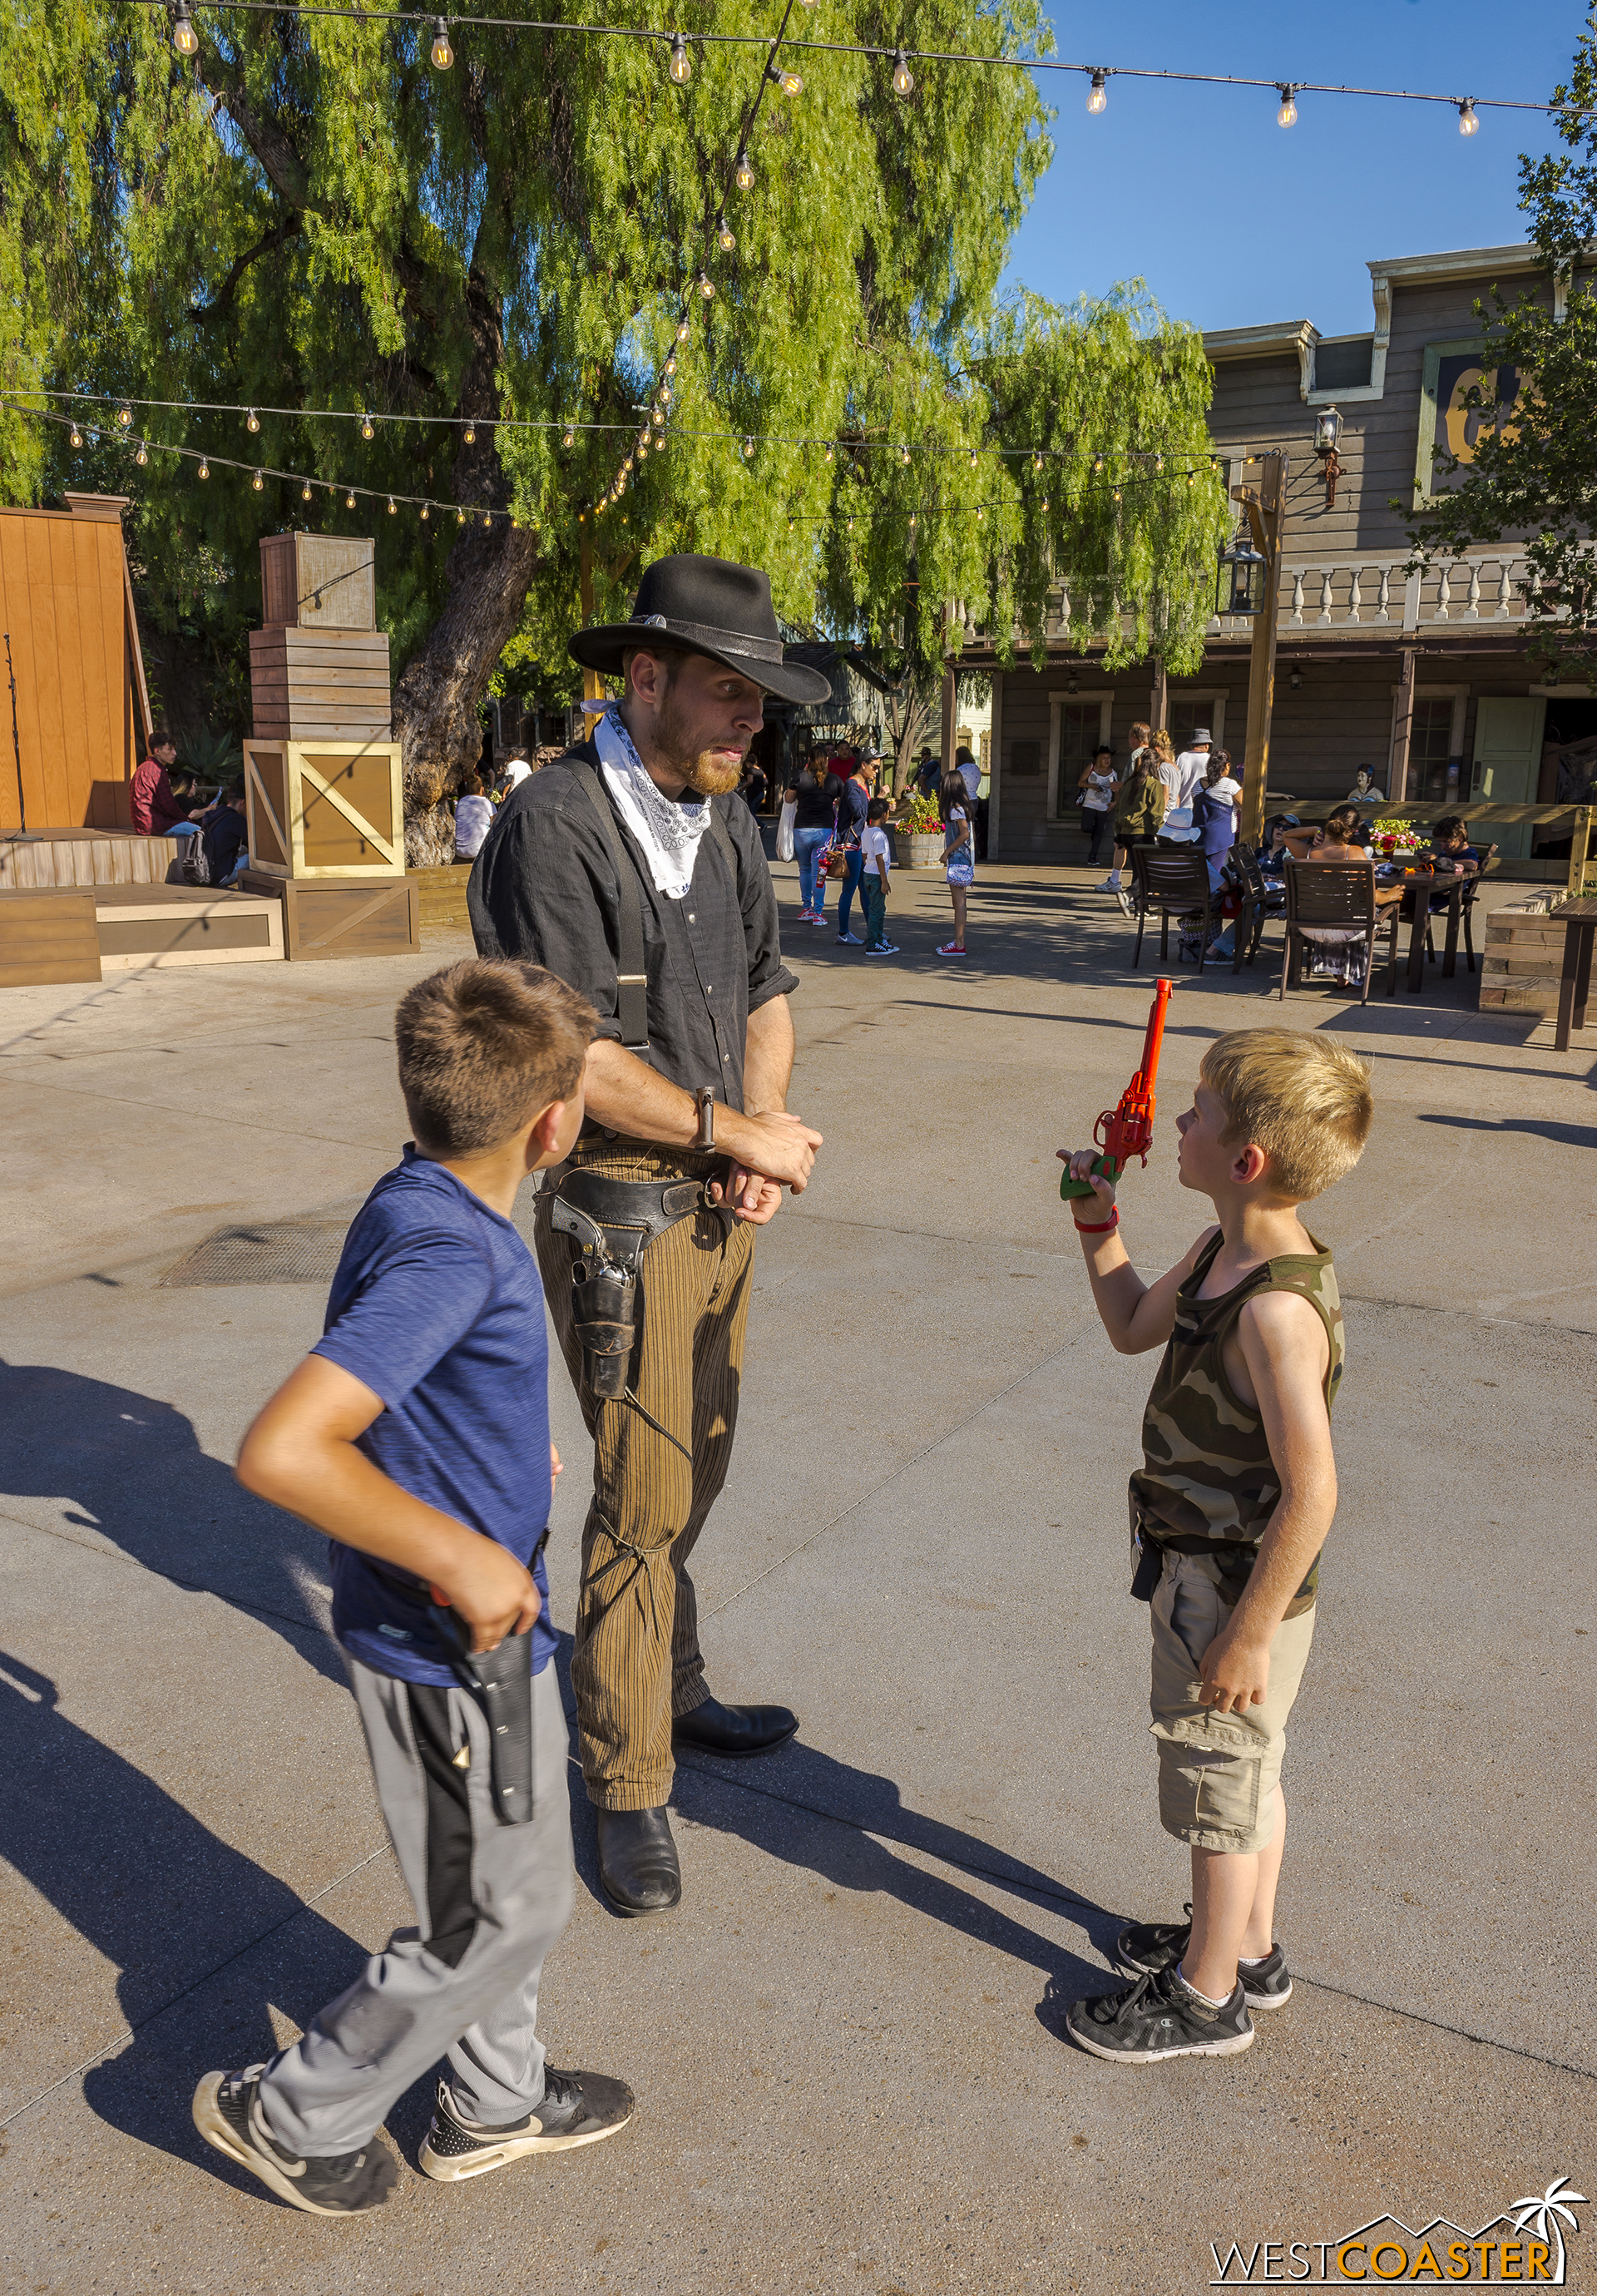 Many people agreed from last year's event and update--Ghost Town Alive! is one of, if not the best thing Knott's has put out in a very long time.